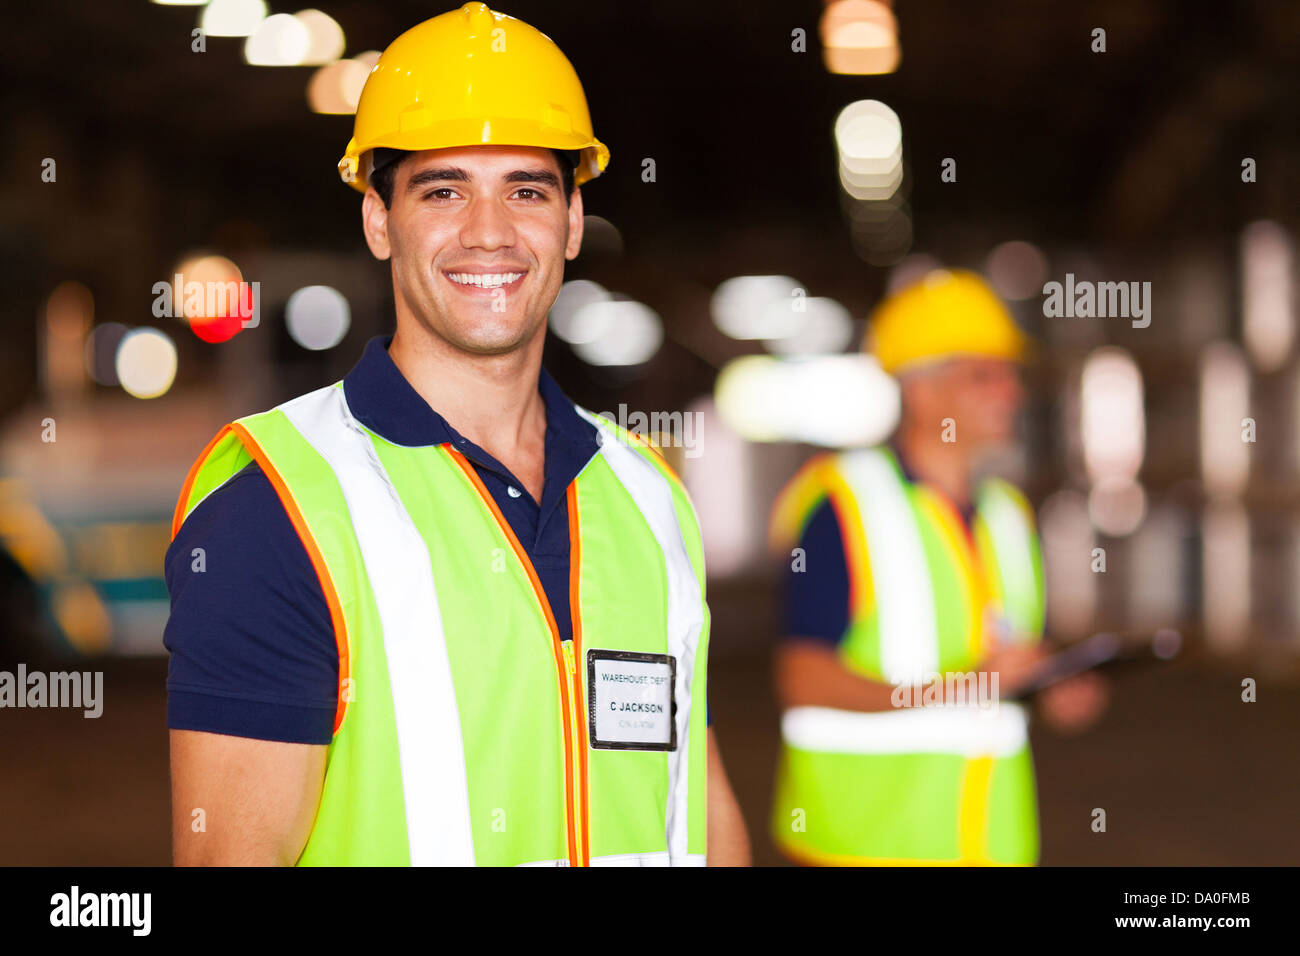 portrait of smiling young warehouse worker indoors - Stock Image